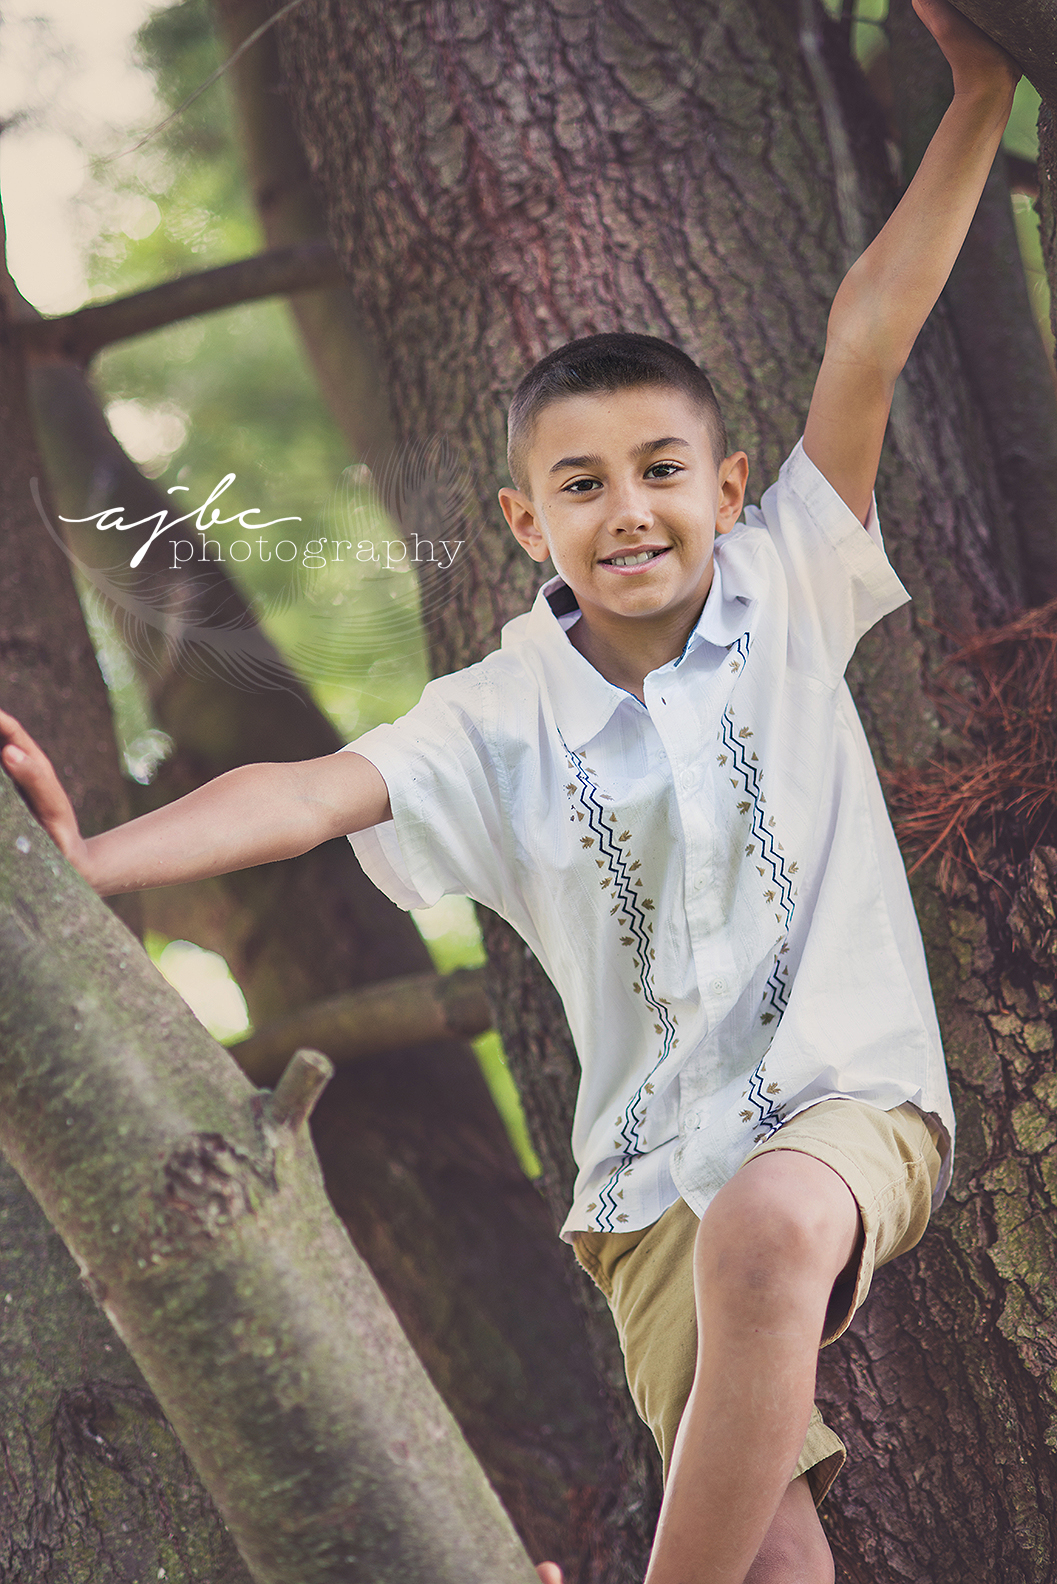 ajbcphotography-porthuron-michigan-family-photographer-outdoors-picnic-brother-sister-mother-portraits-child-photographer-family-fun-tree-photoshoot.jpg